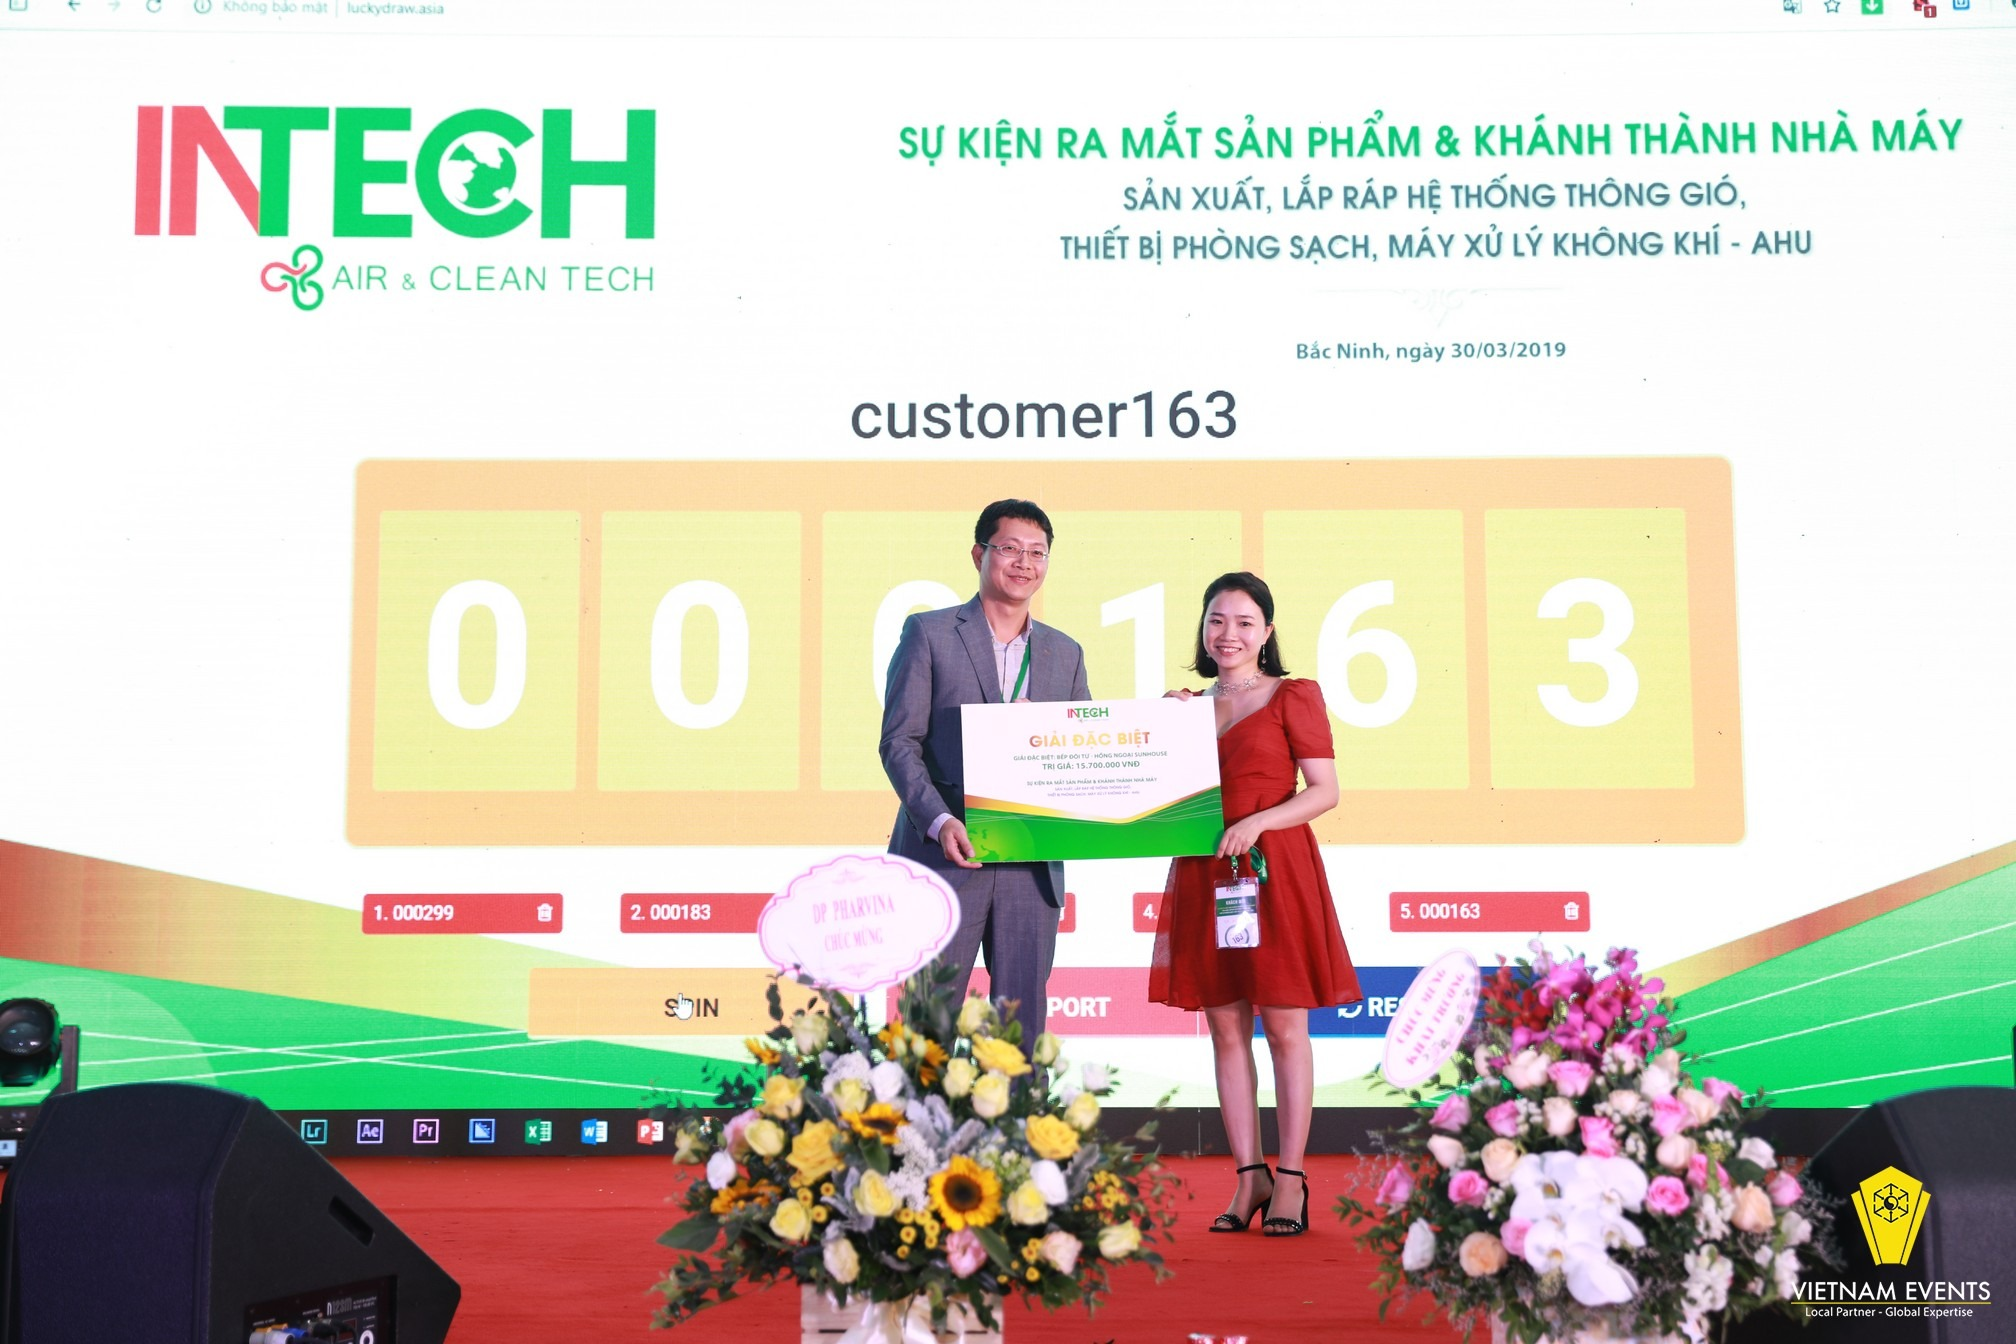 INTECH PRODUCT LAUNCH AND FACTORY INAUGURATION